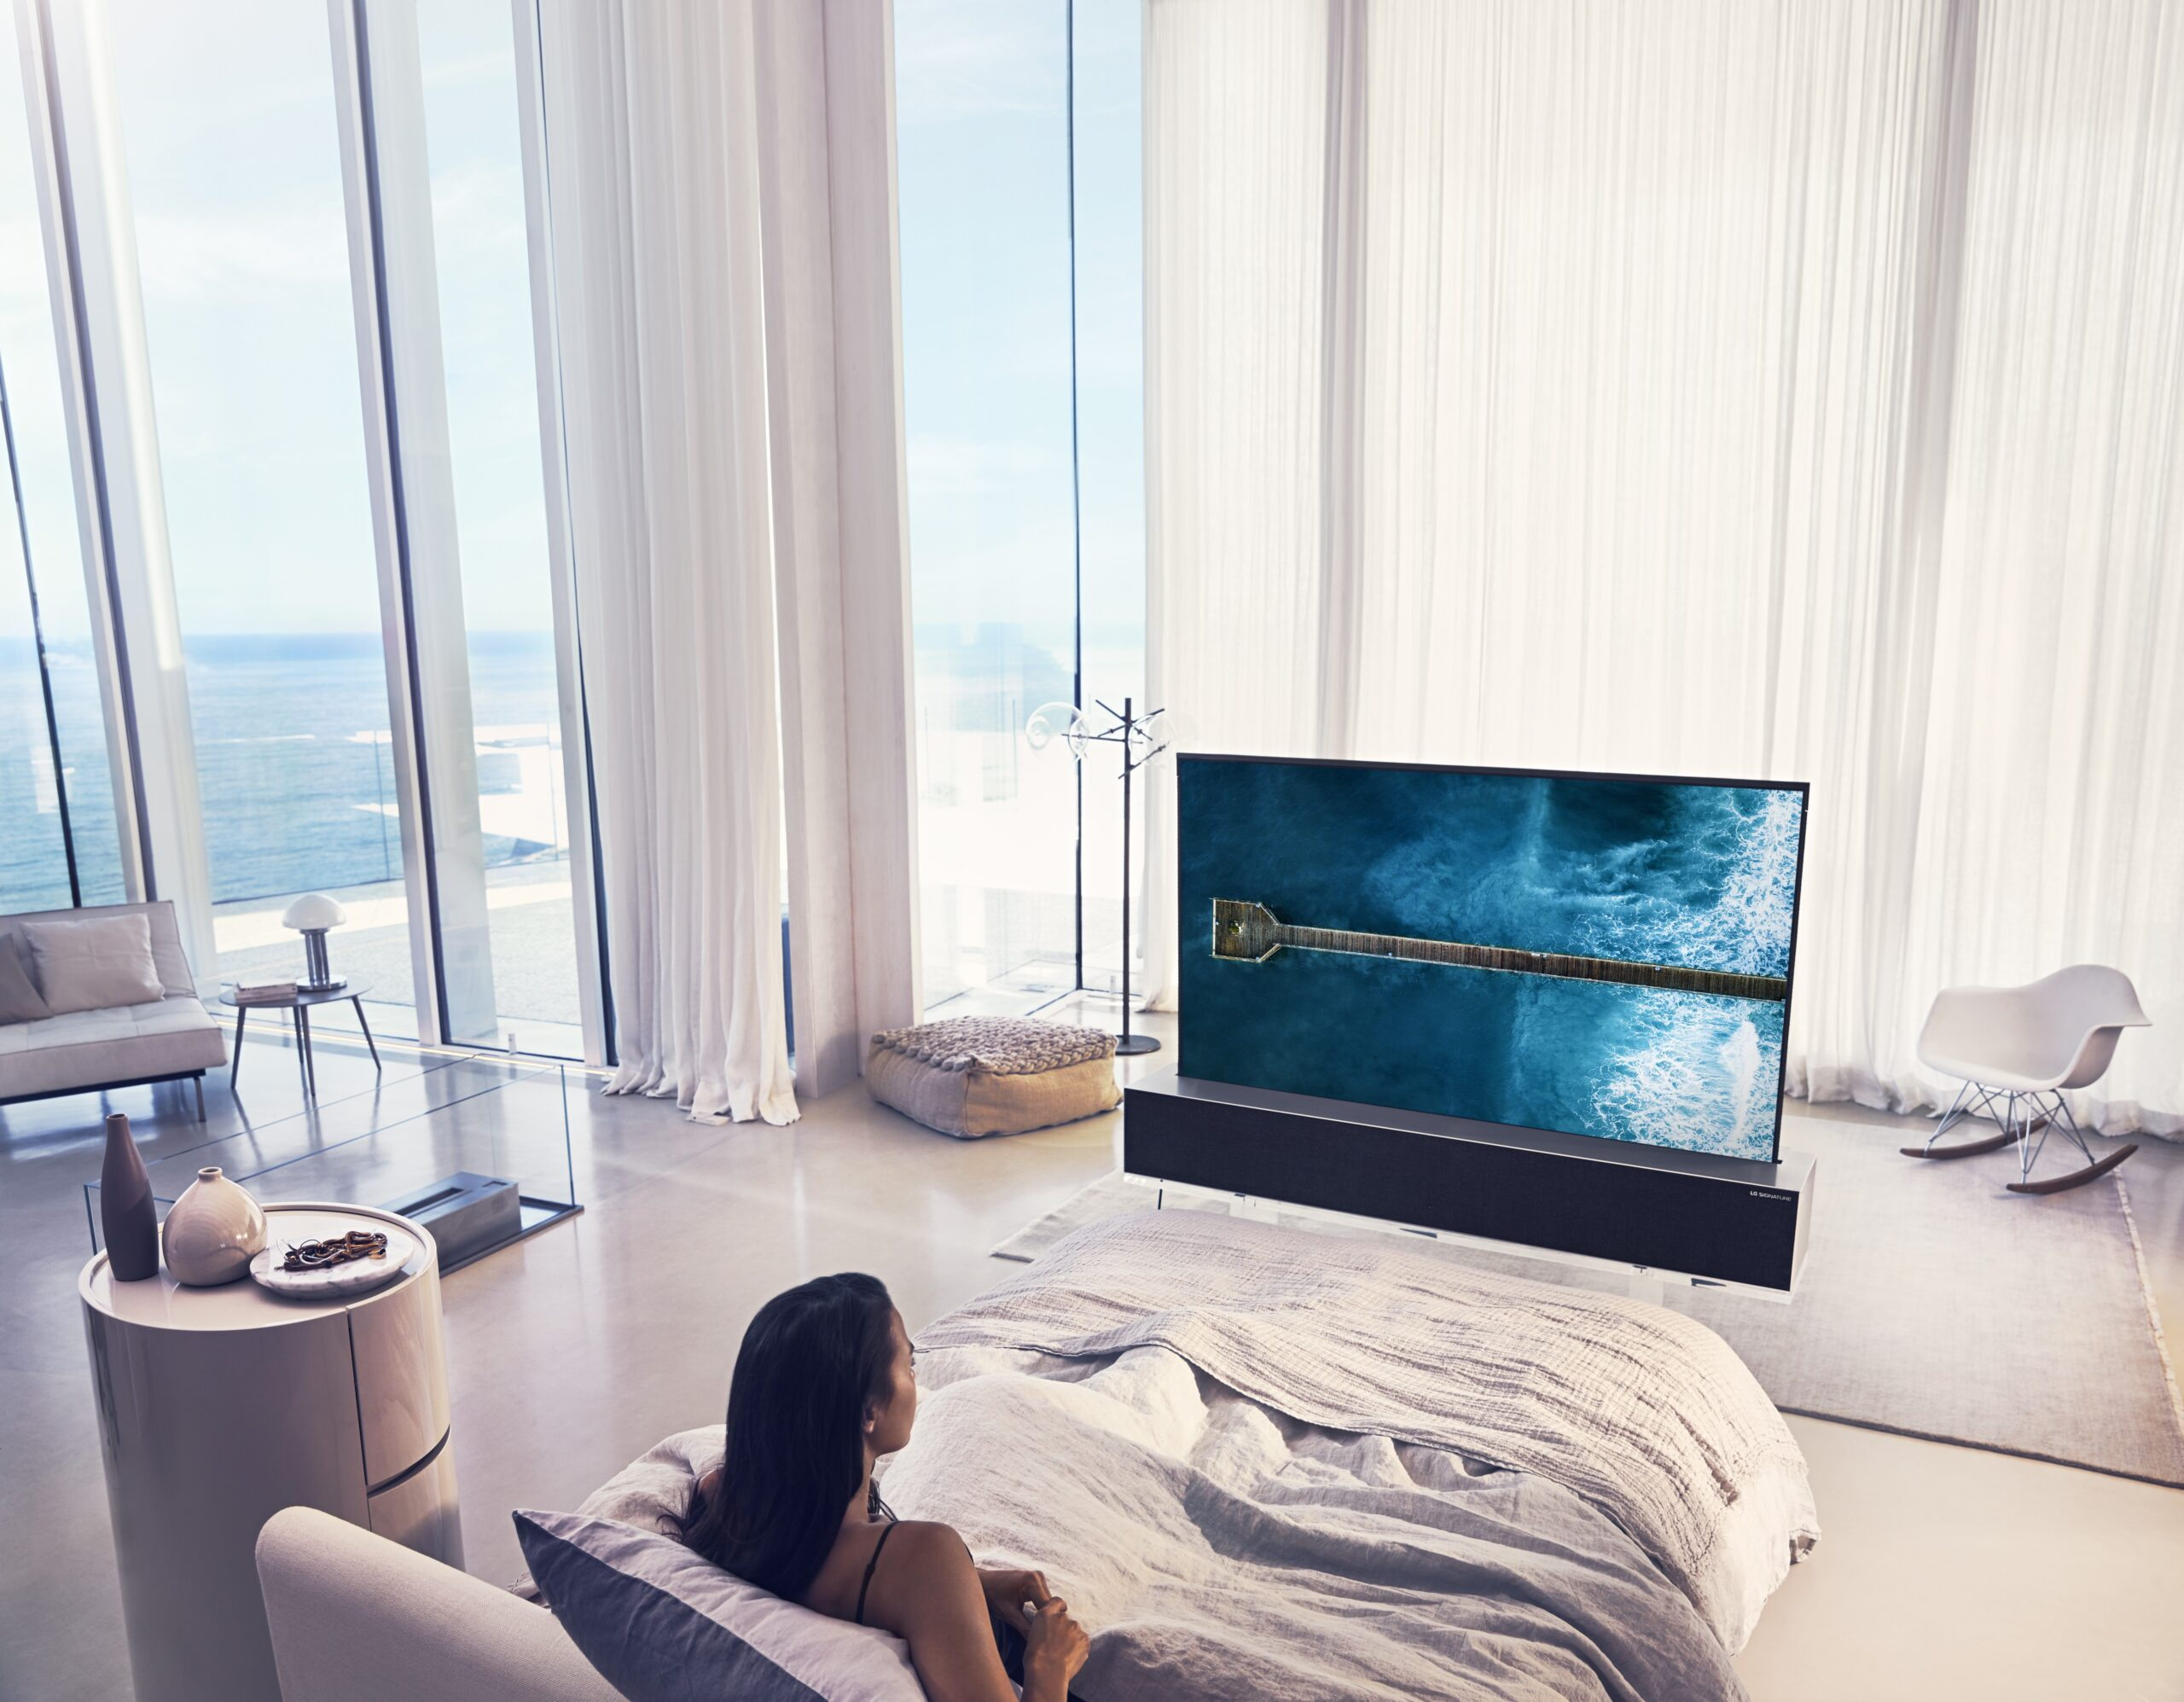 A woman in bed watching an LG SIGNATURE OLED TV R at a bright, beachside mansion.